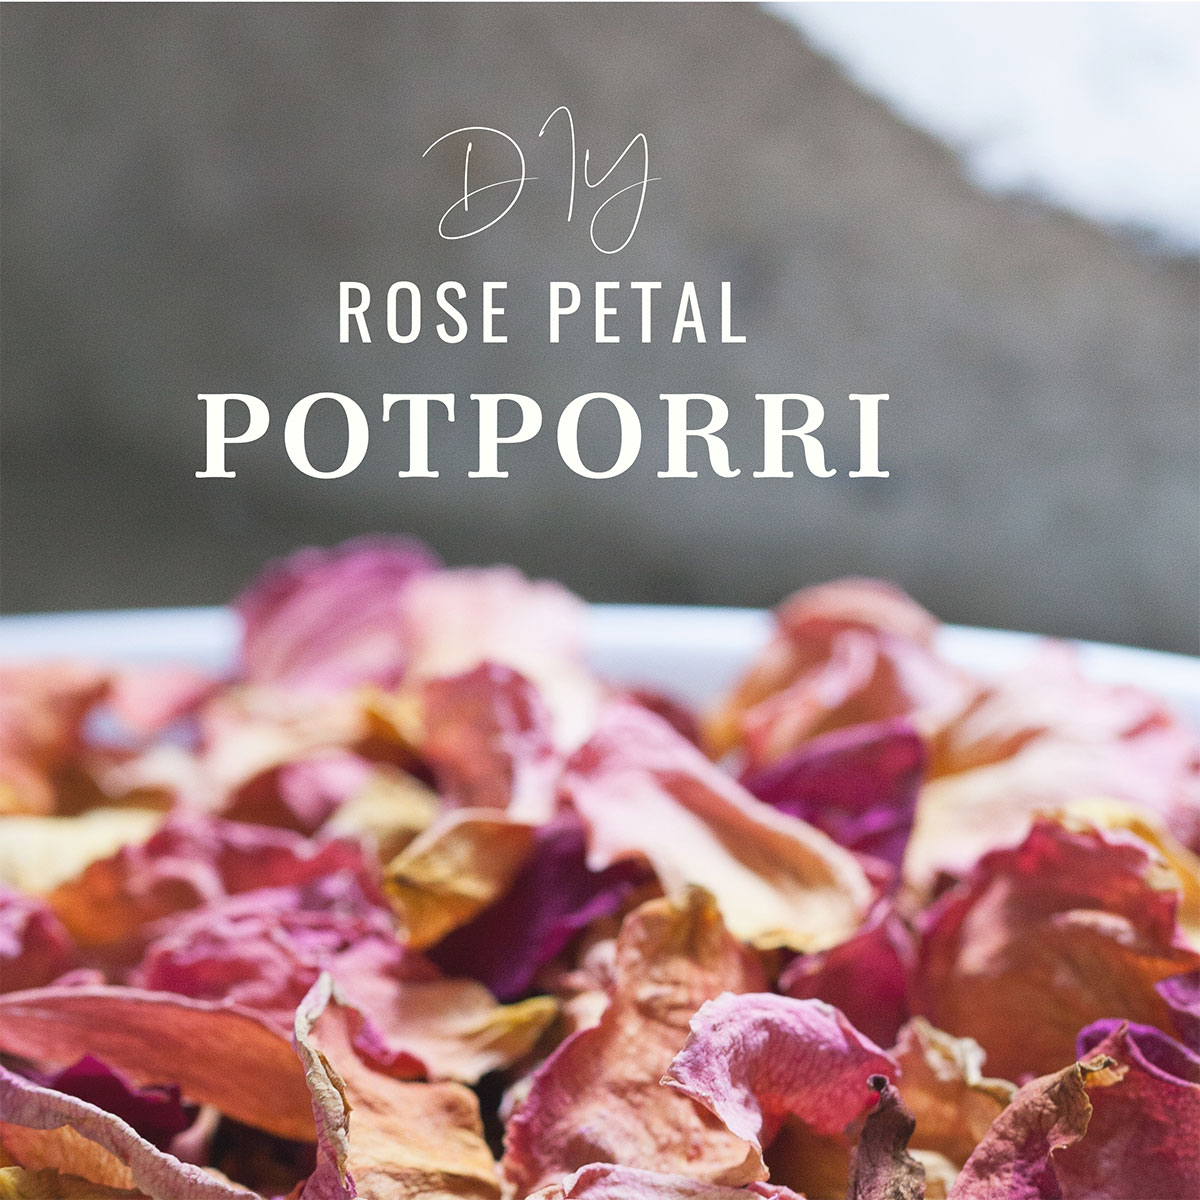 How to Make Potpourri with Rose Petals